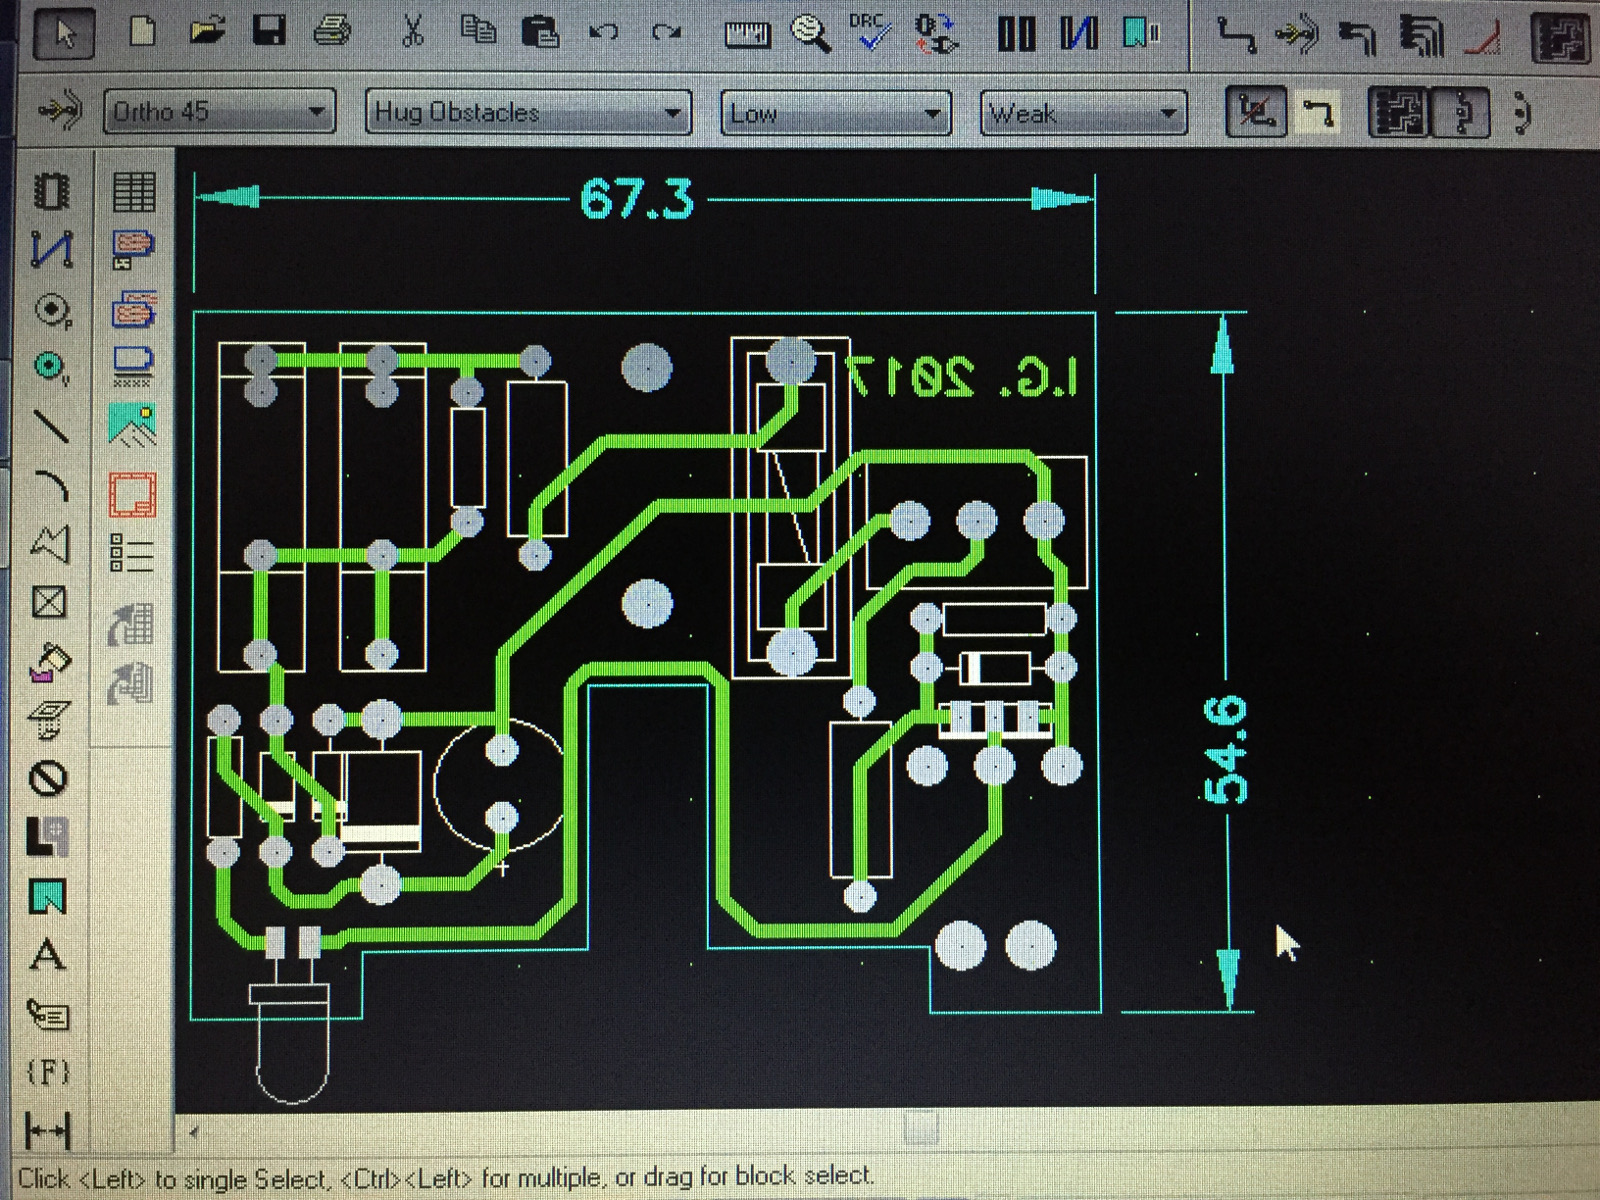 Pcb design job vacancies in bangalore printed circuit